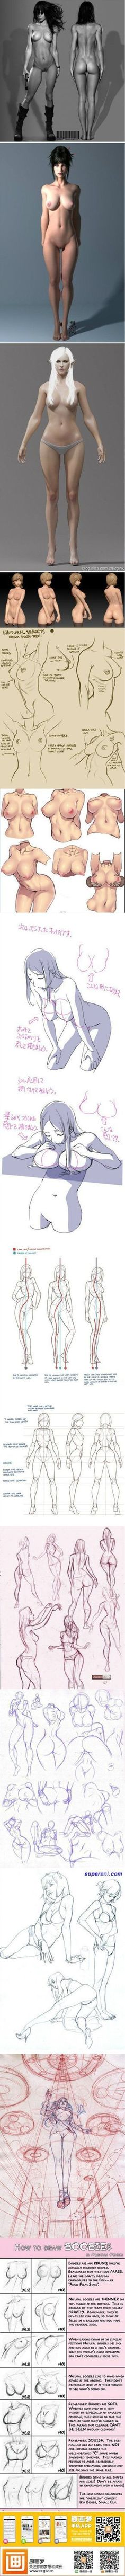 Bigswitchbladeknife.com likes drawing Body anatomy. How to draw females